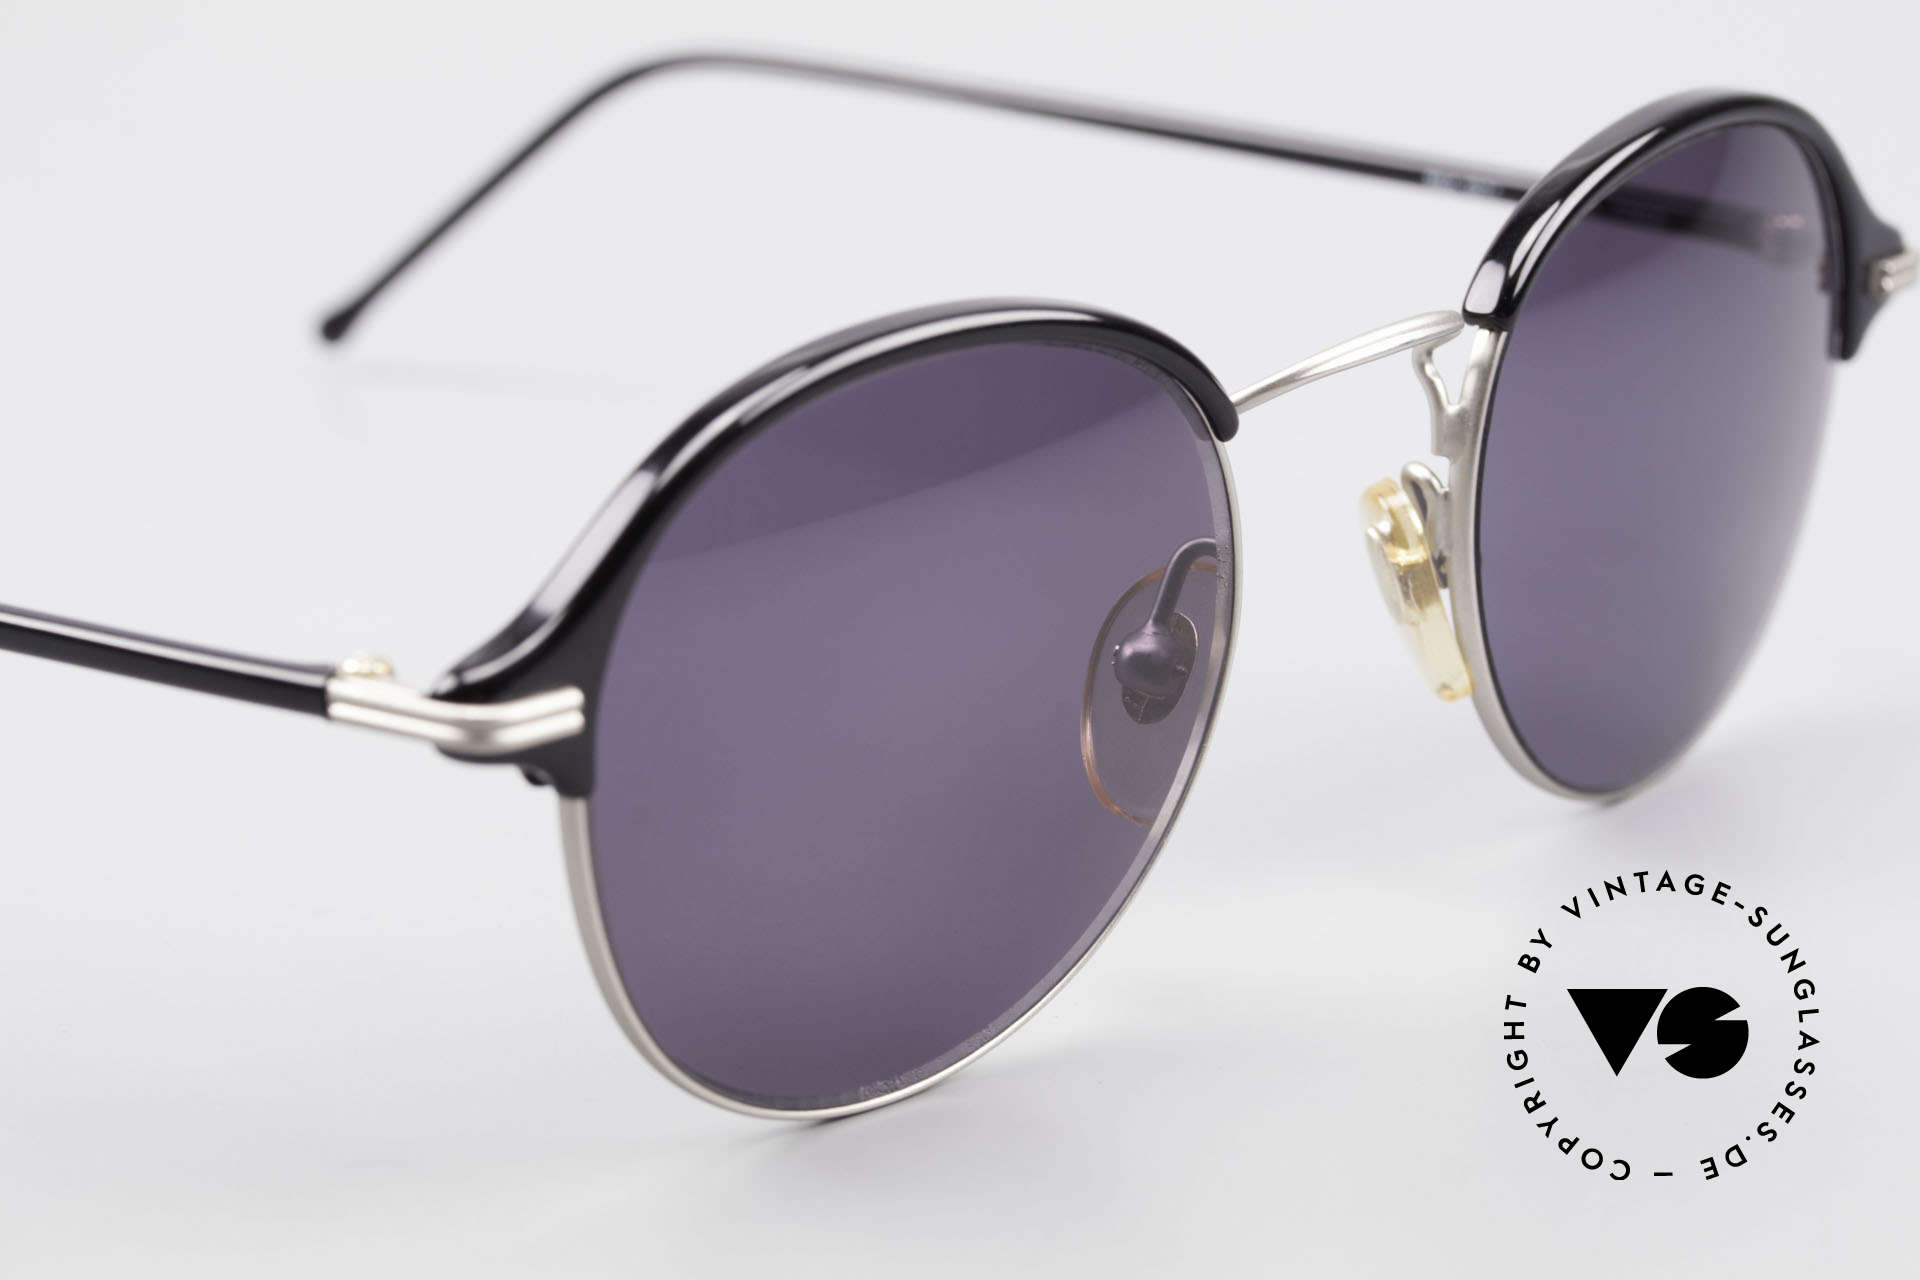 Cutler And Gross 0374 Panto Frame Windsor Rings, never worn; like all our vintage Cutler & Gross eyewear, Made for Men and Women